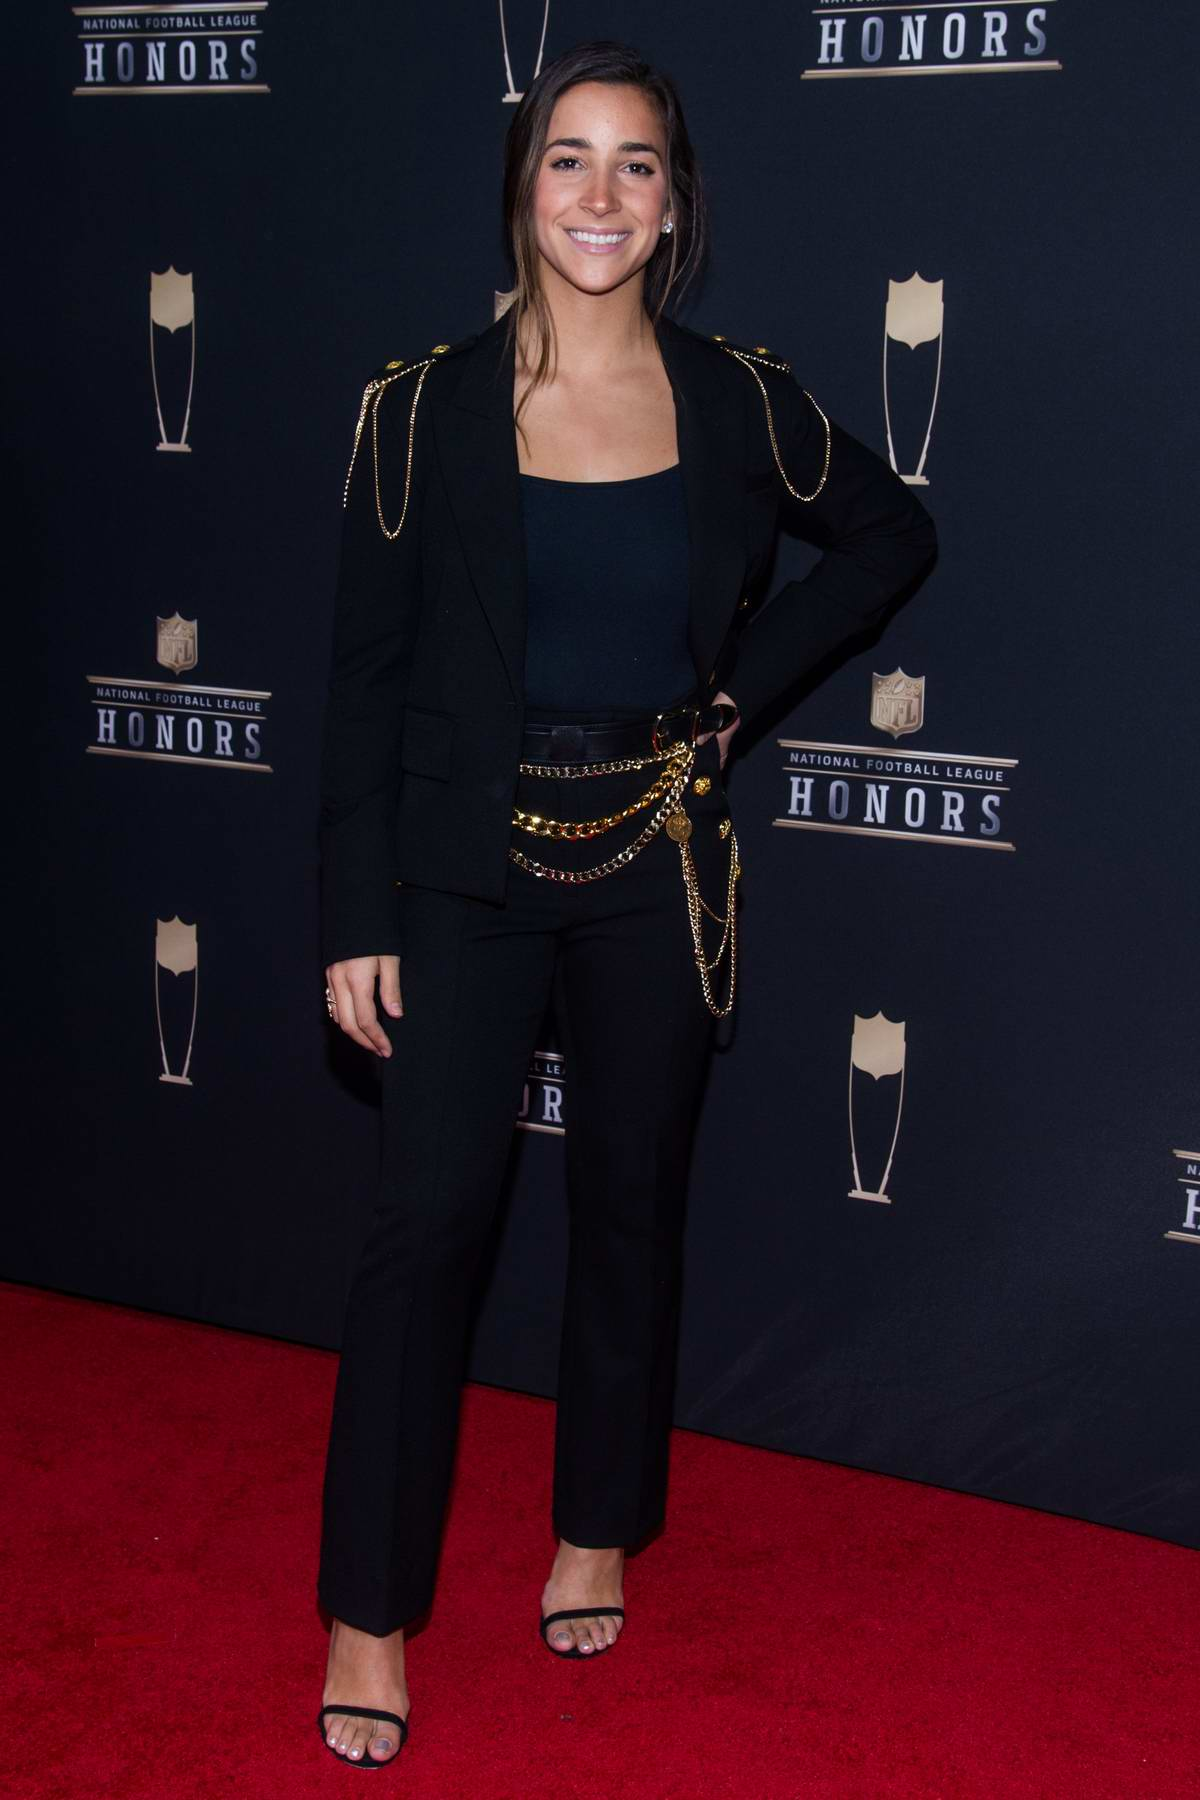 Aly Raisman attends the 8th Annual NFL Honors at the Fox Theatre in Atlanta, Georgia